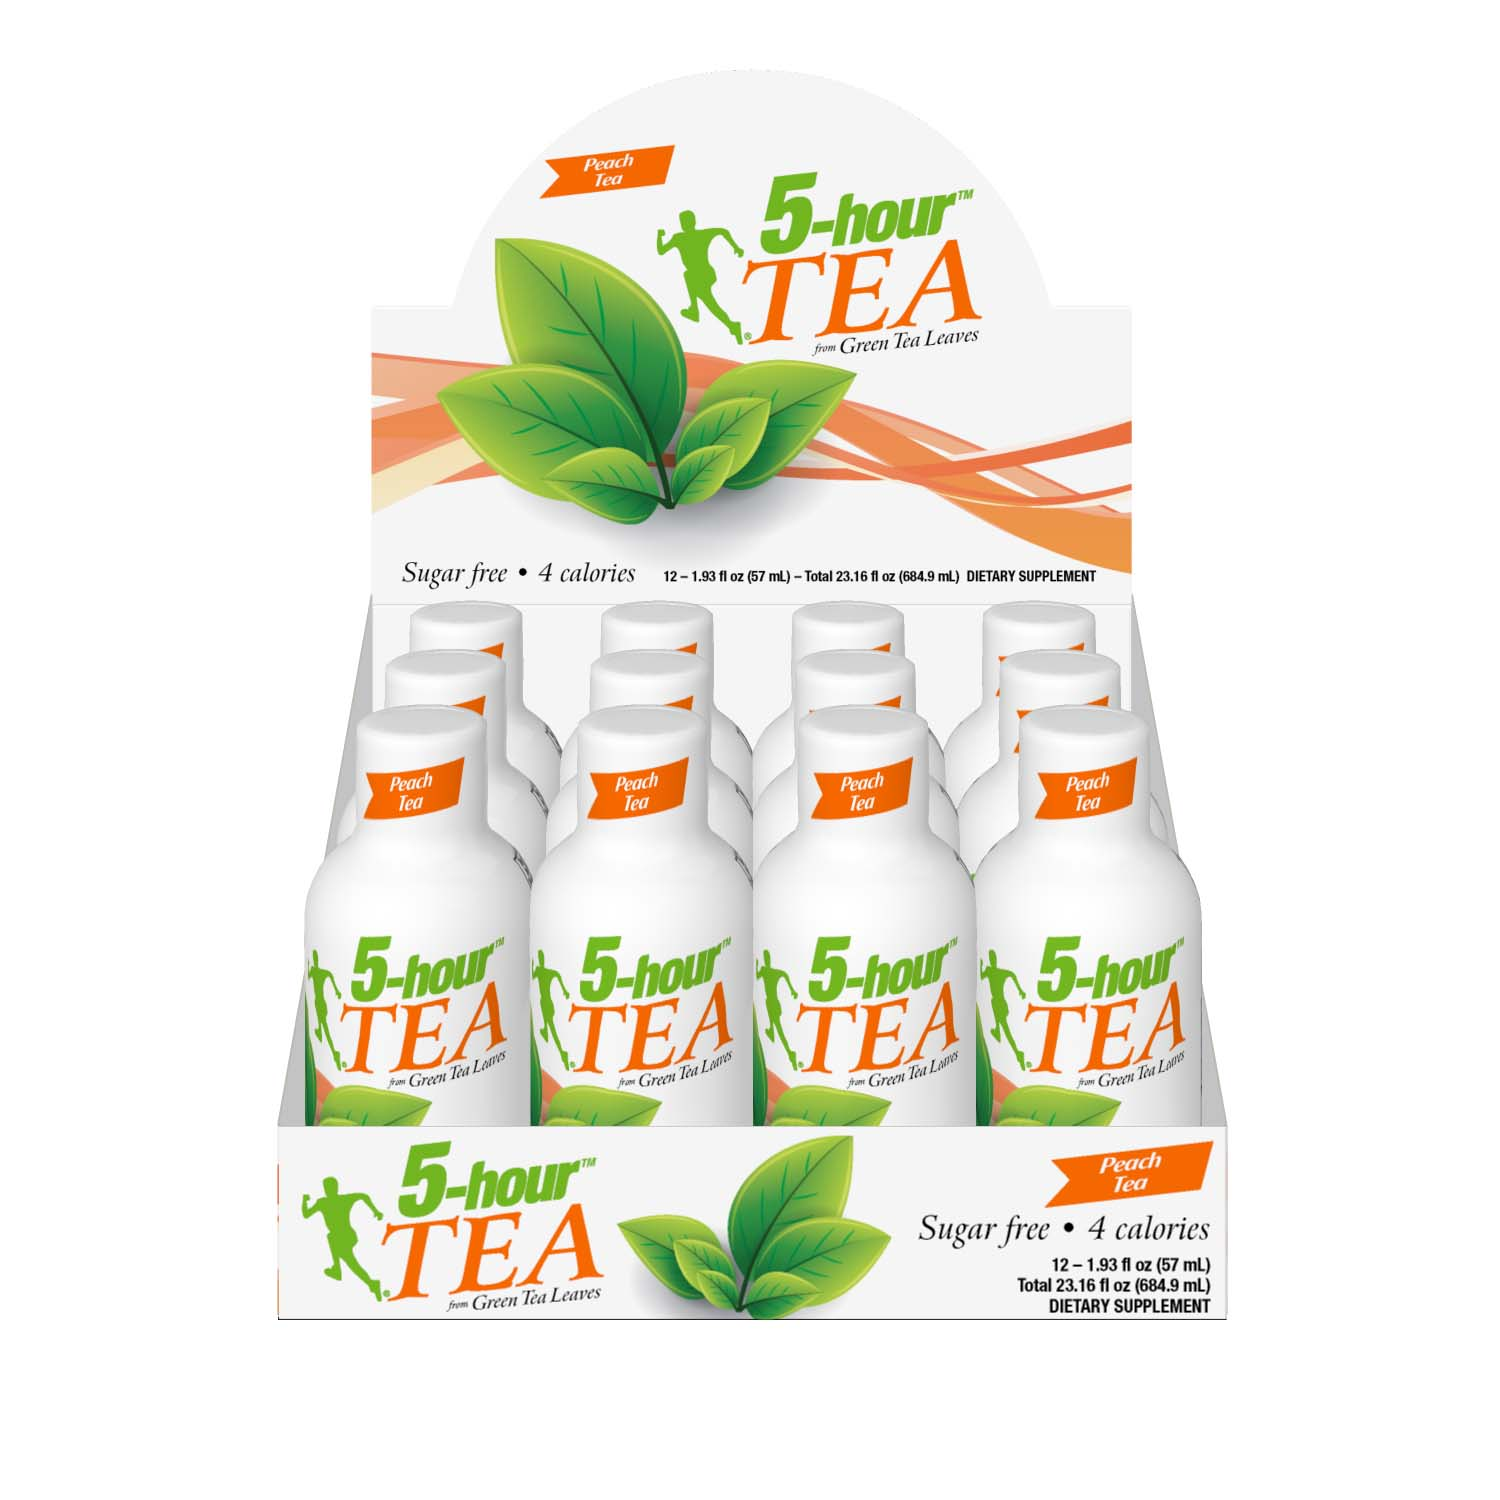 5-hour Tea Peach flavor, 1.93 Fl Oz, 12 Ct